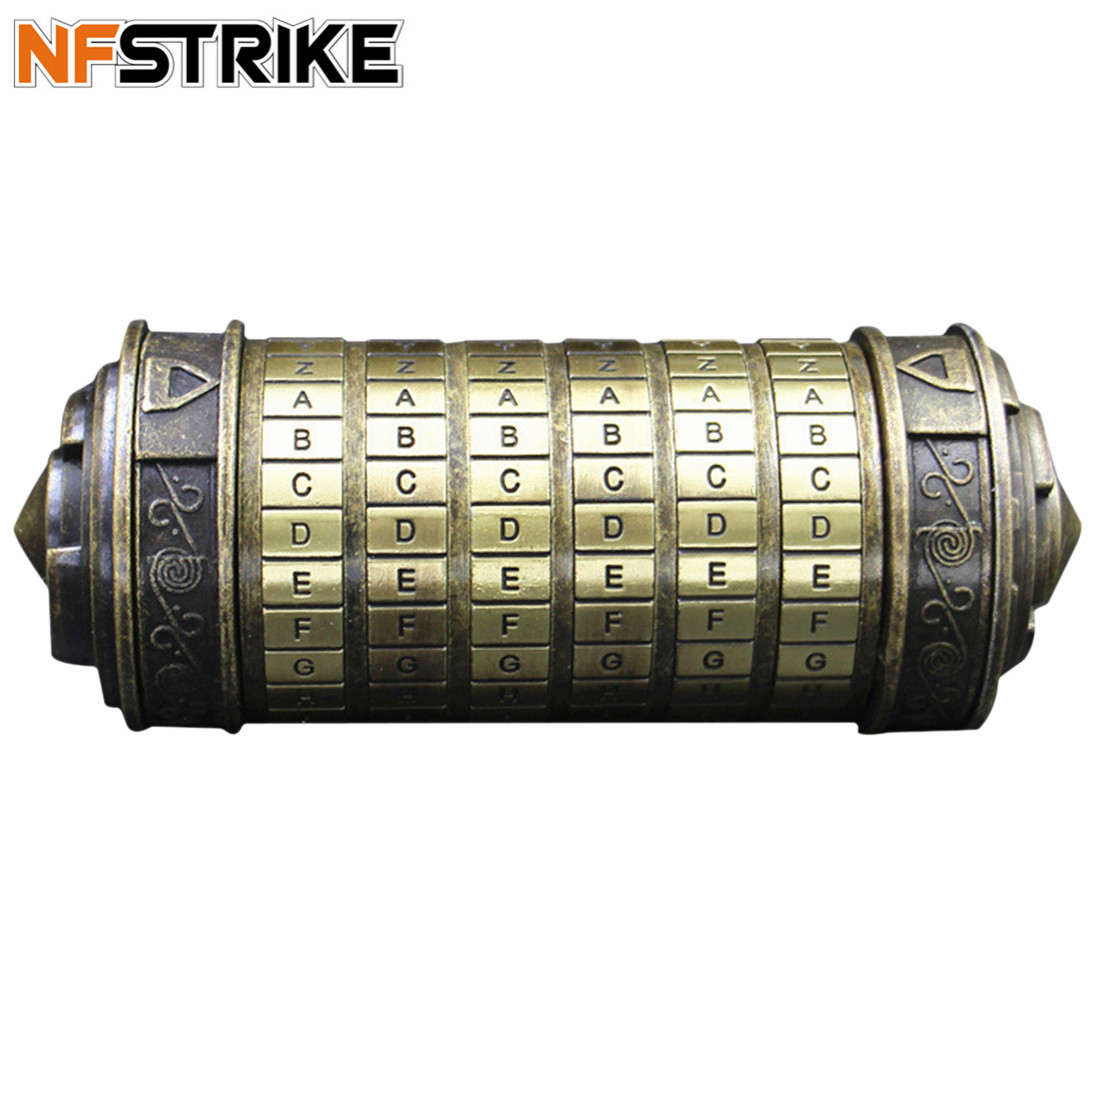 NFSTRIKE Bronze Cryptex Lock Da Vinci Code Creative Gift Educational Coded Lock Toy Puzzles for Kids Adults Children Toys Kit-in Puzzles from Toys & Hobbies    1